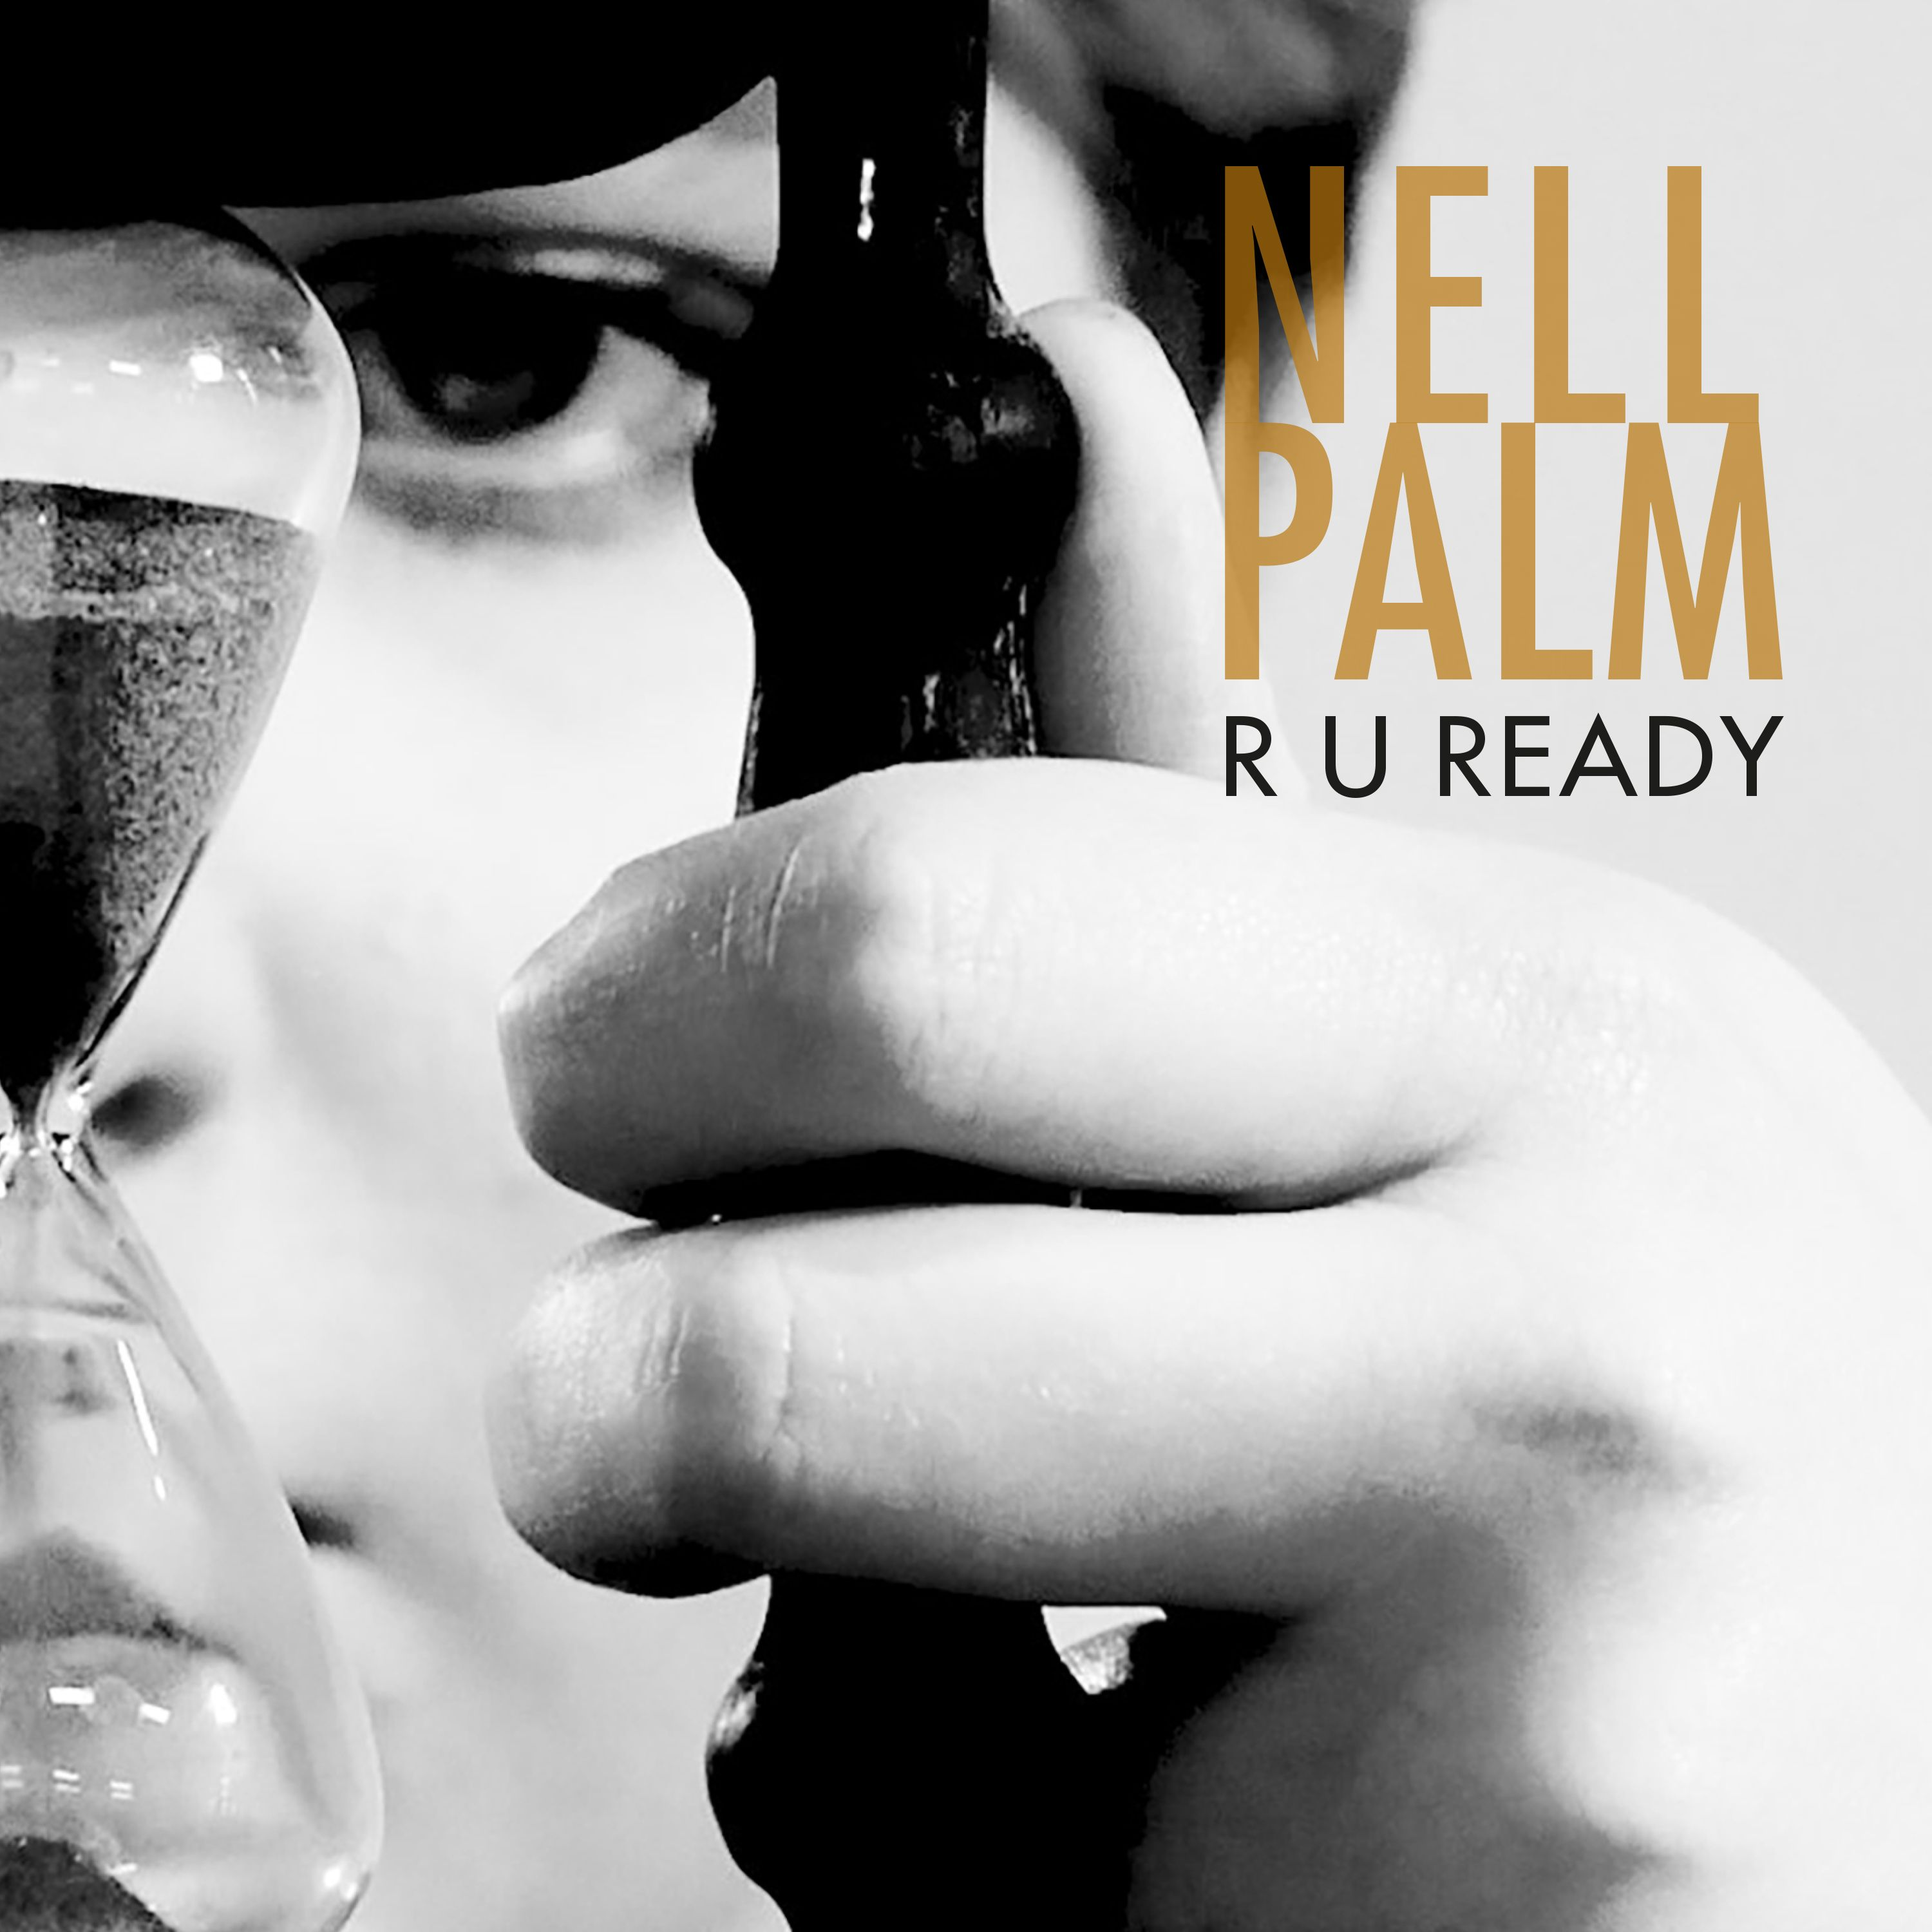 Nell Palm